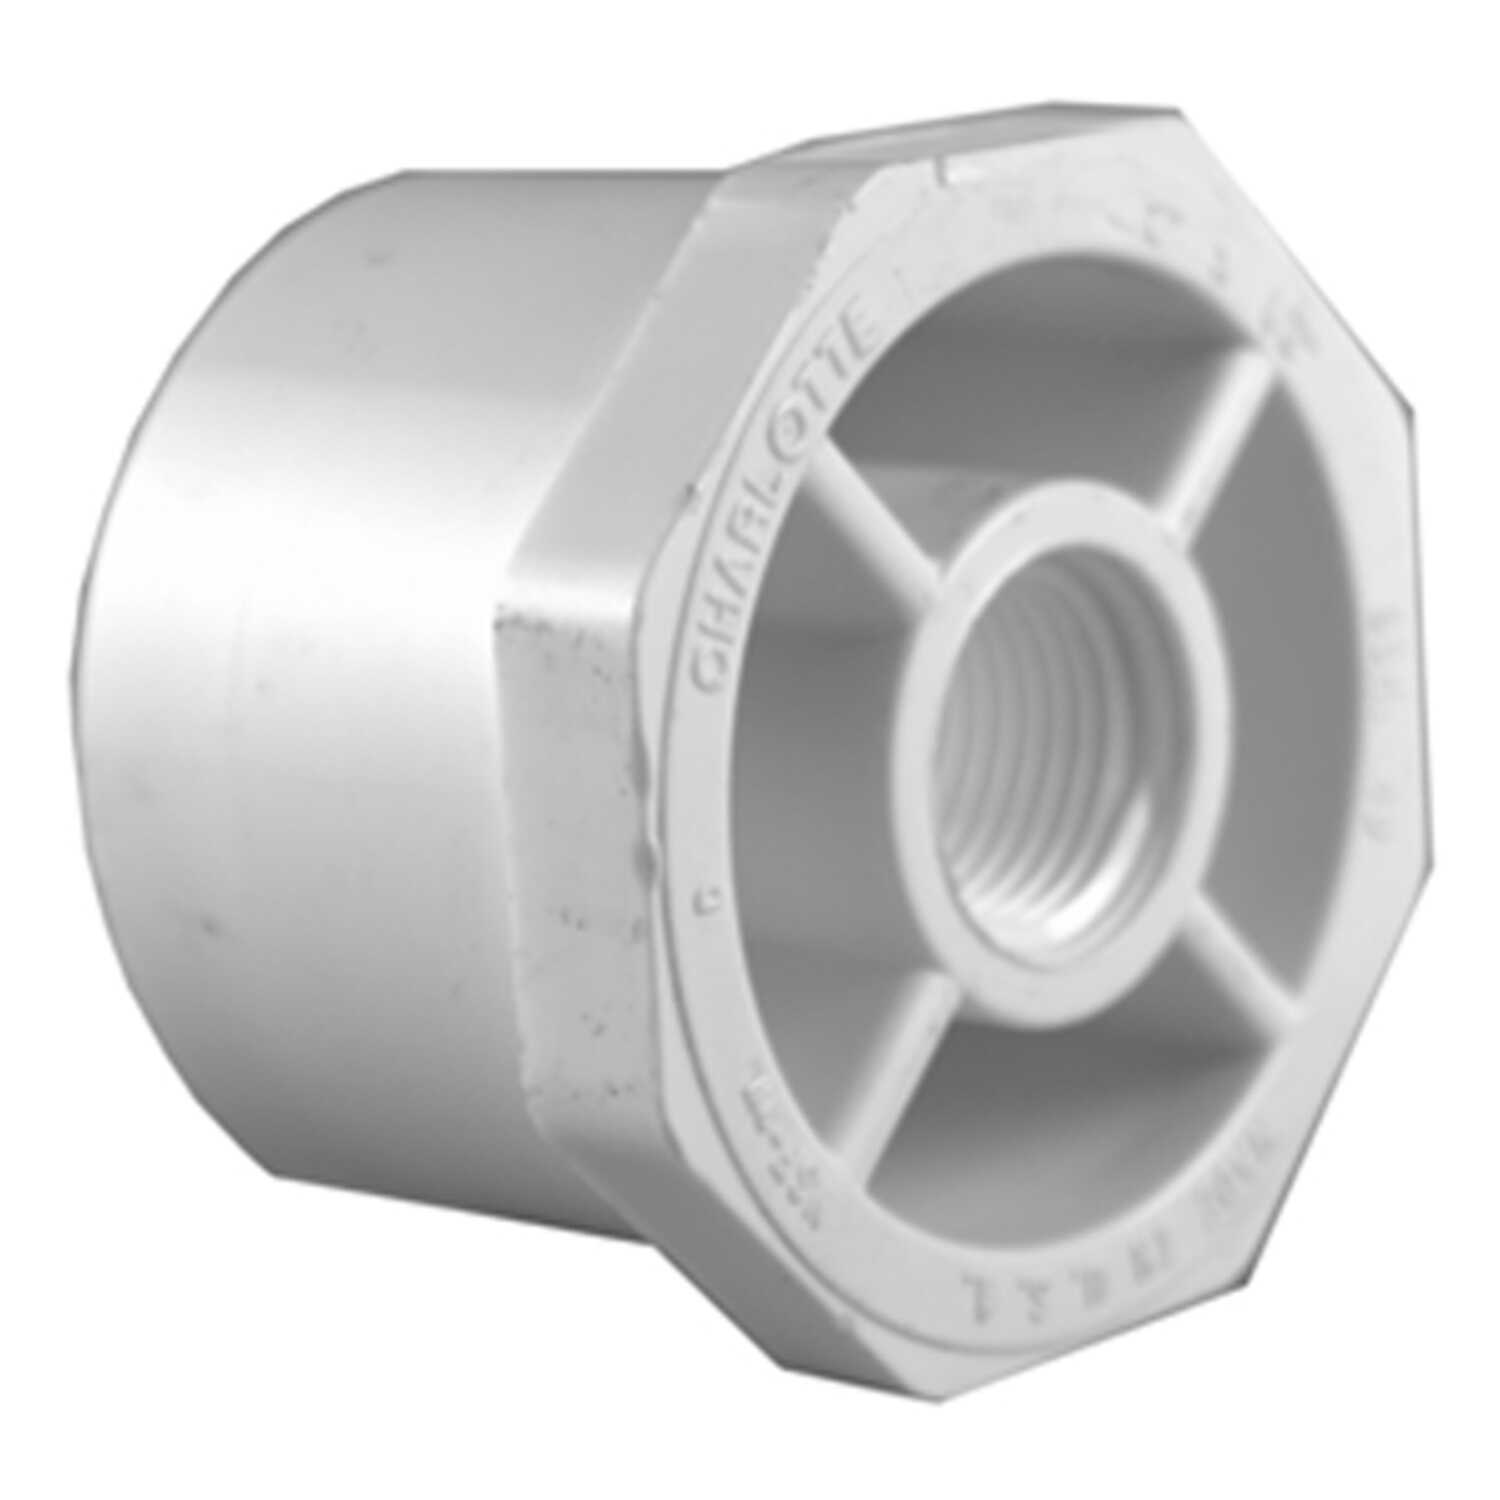 Charlotte Pipe  Schedule 40  2 in. Spigot   x 1/2 in. Dia. FPT  PVC  Reducing Bushing